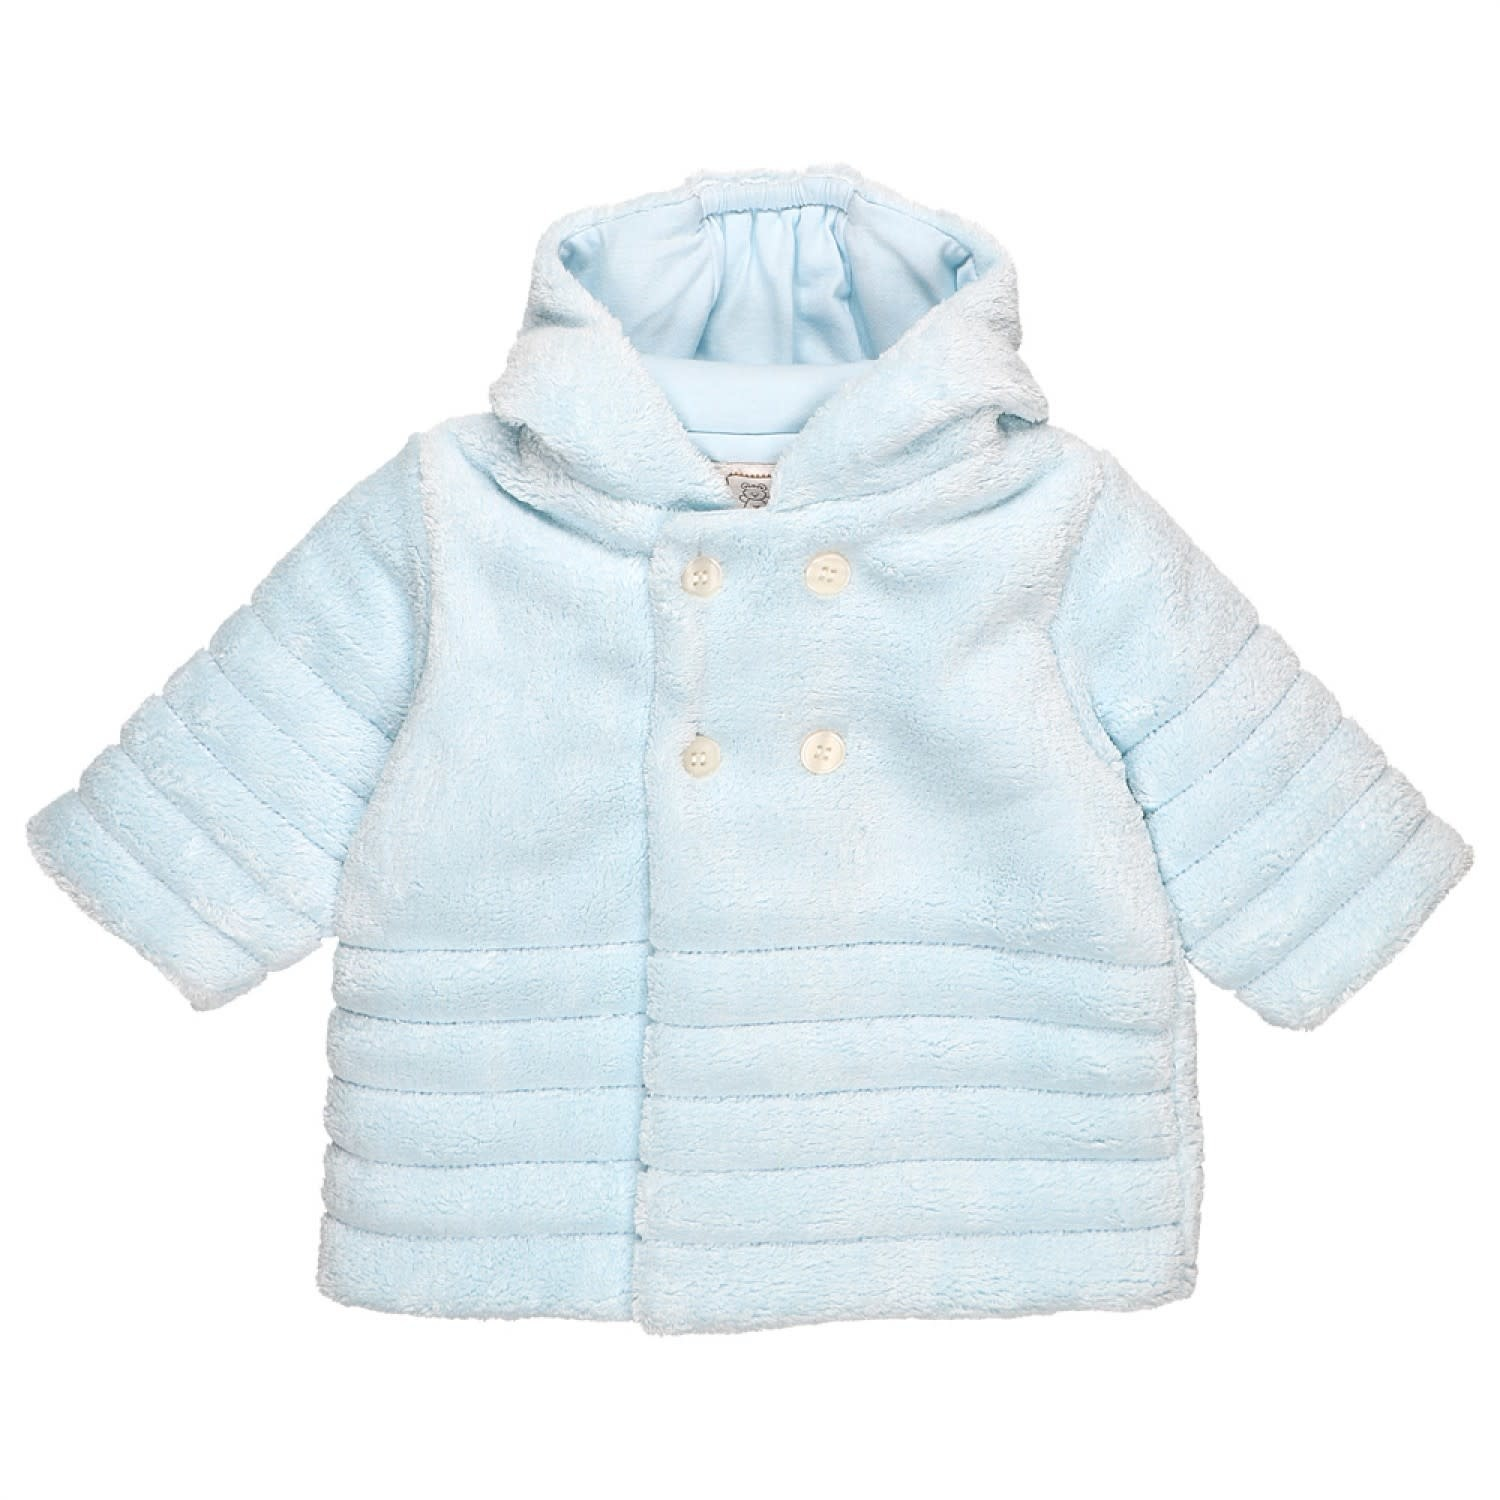 Emile et Rose Emile Et Rose 9299PB Blue Fleece Jacket